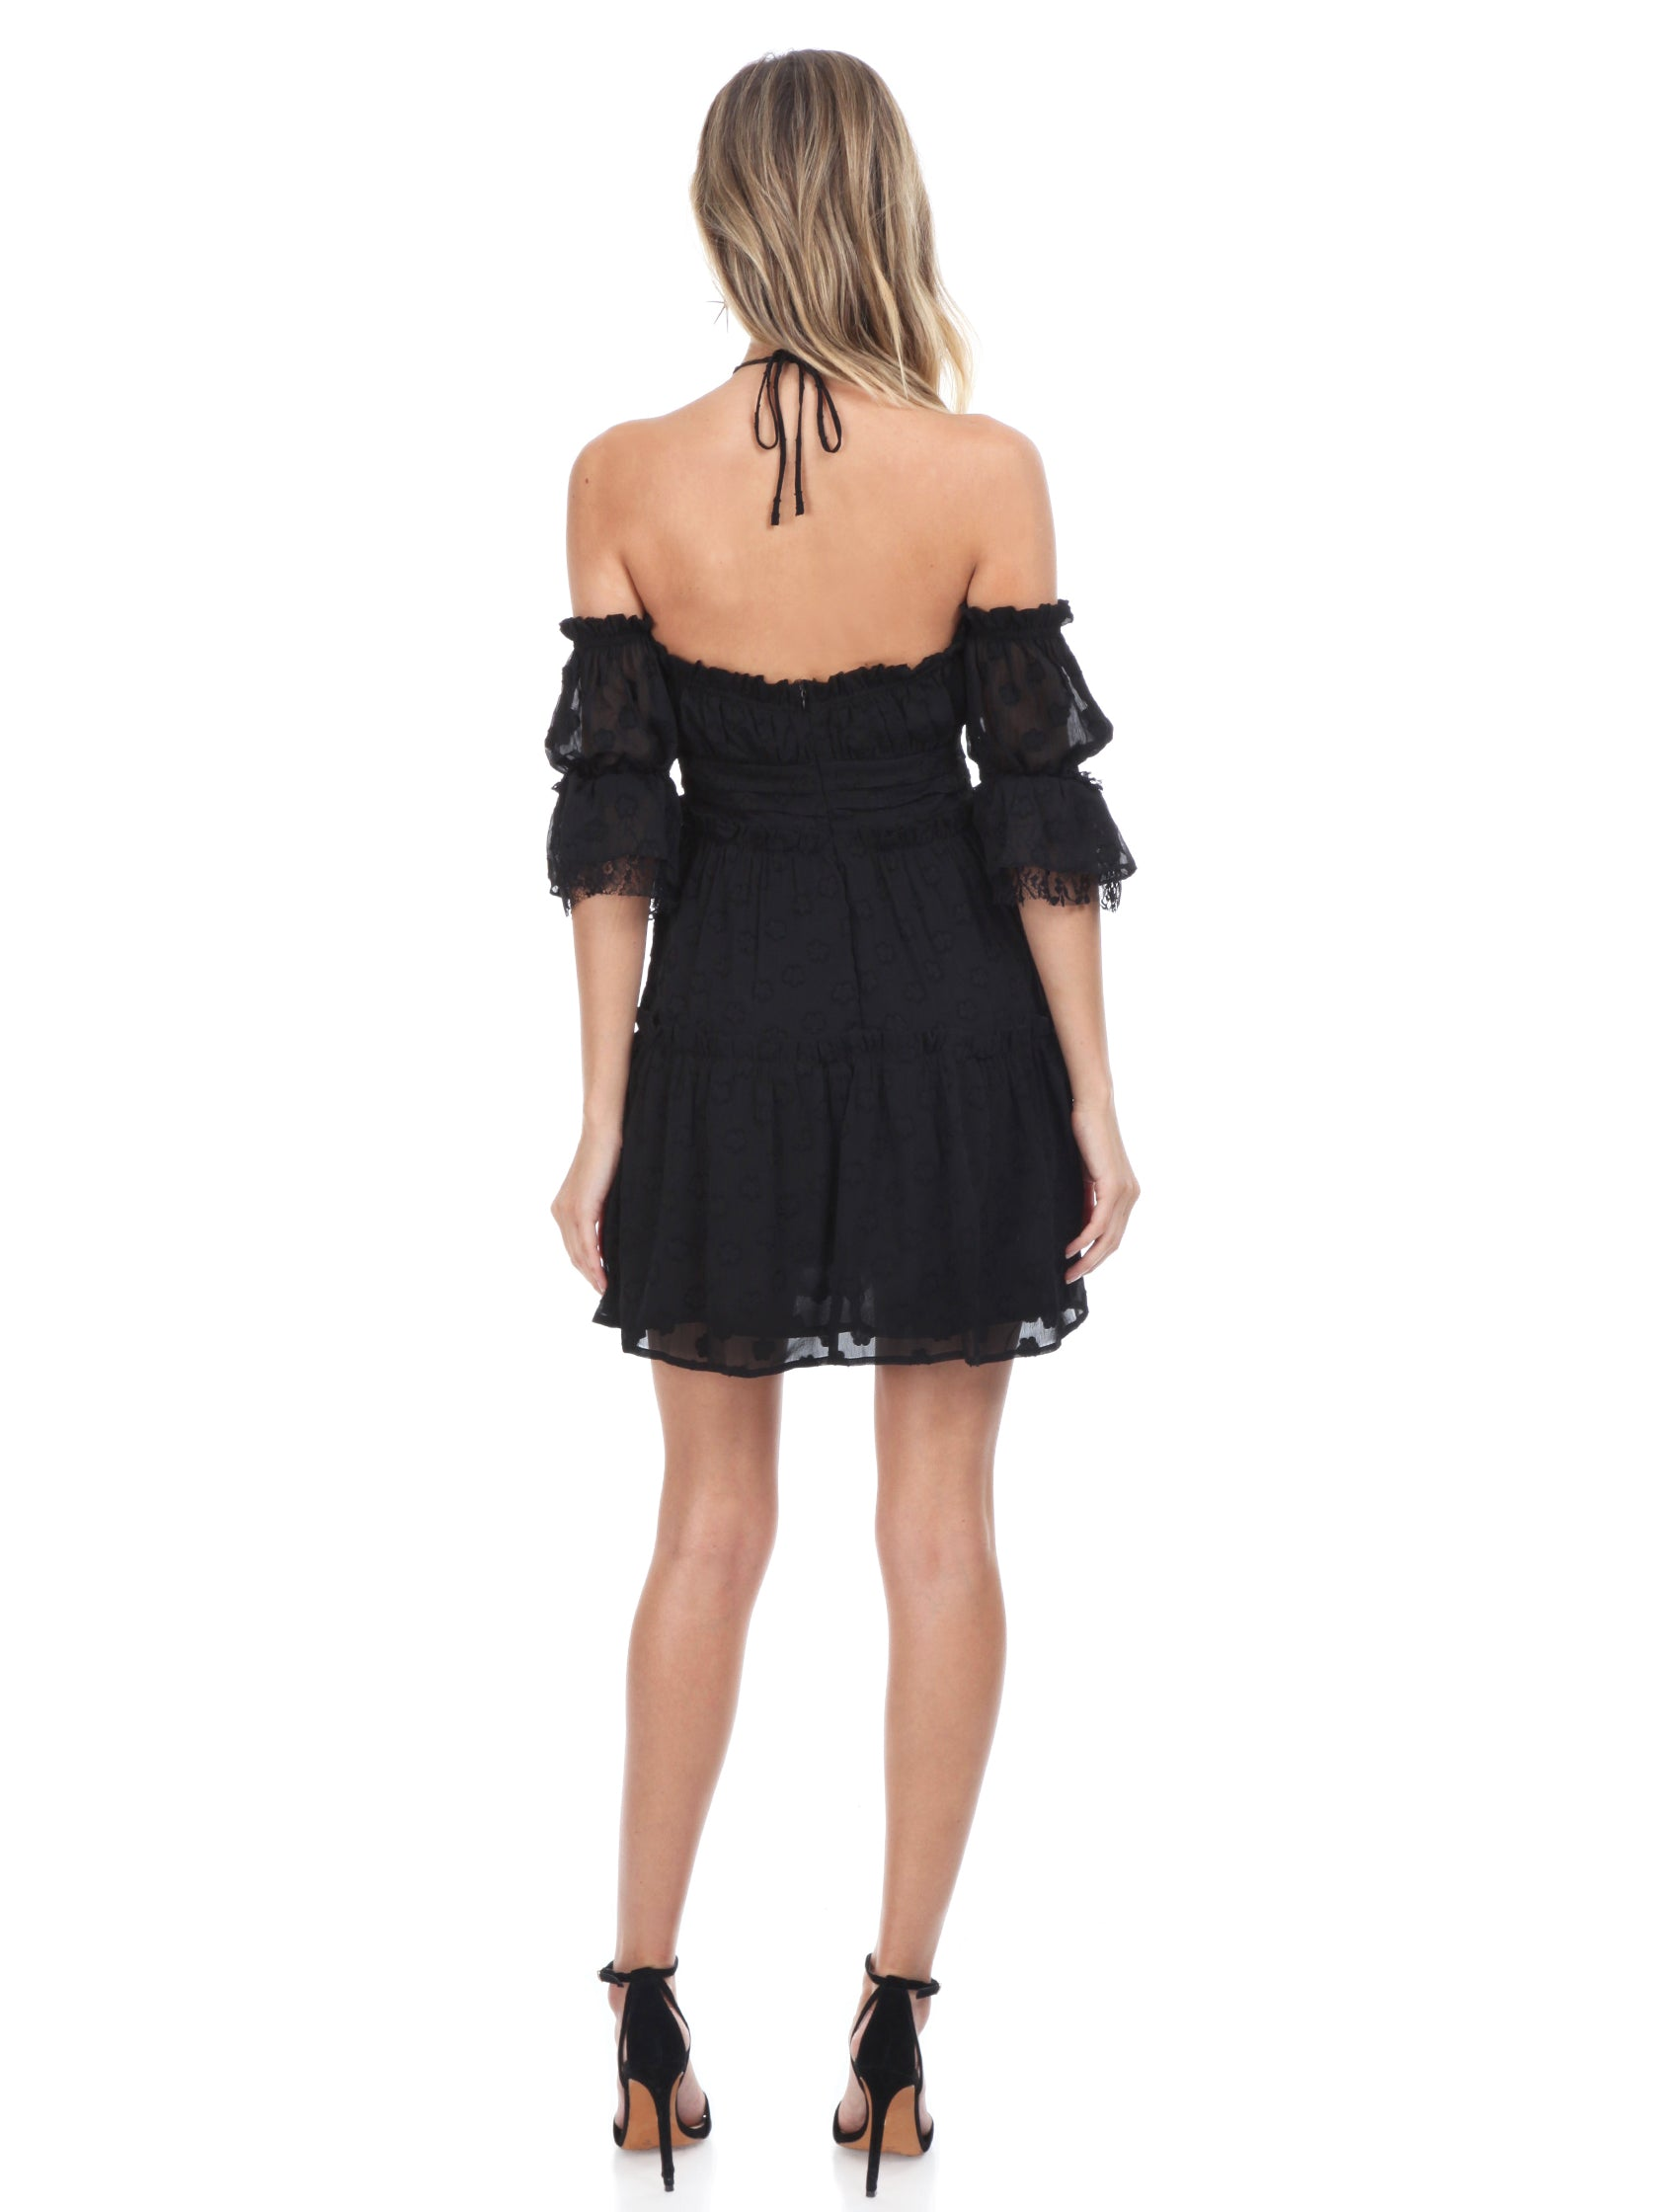 Women wearing a dress rental from FashionPass called Jordan Ruffle Mini Dress